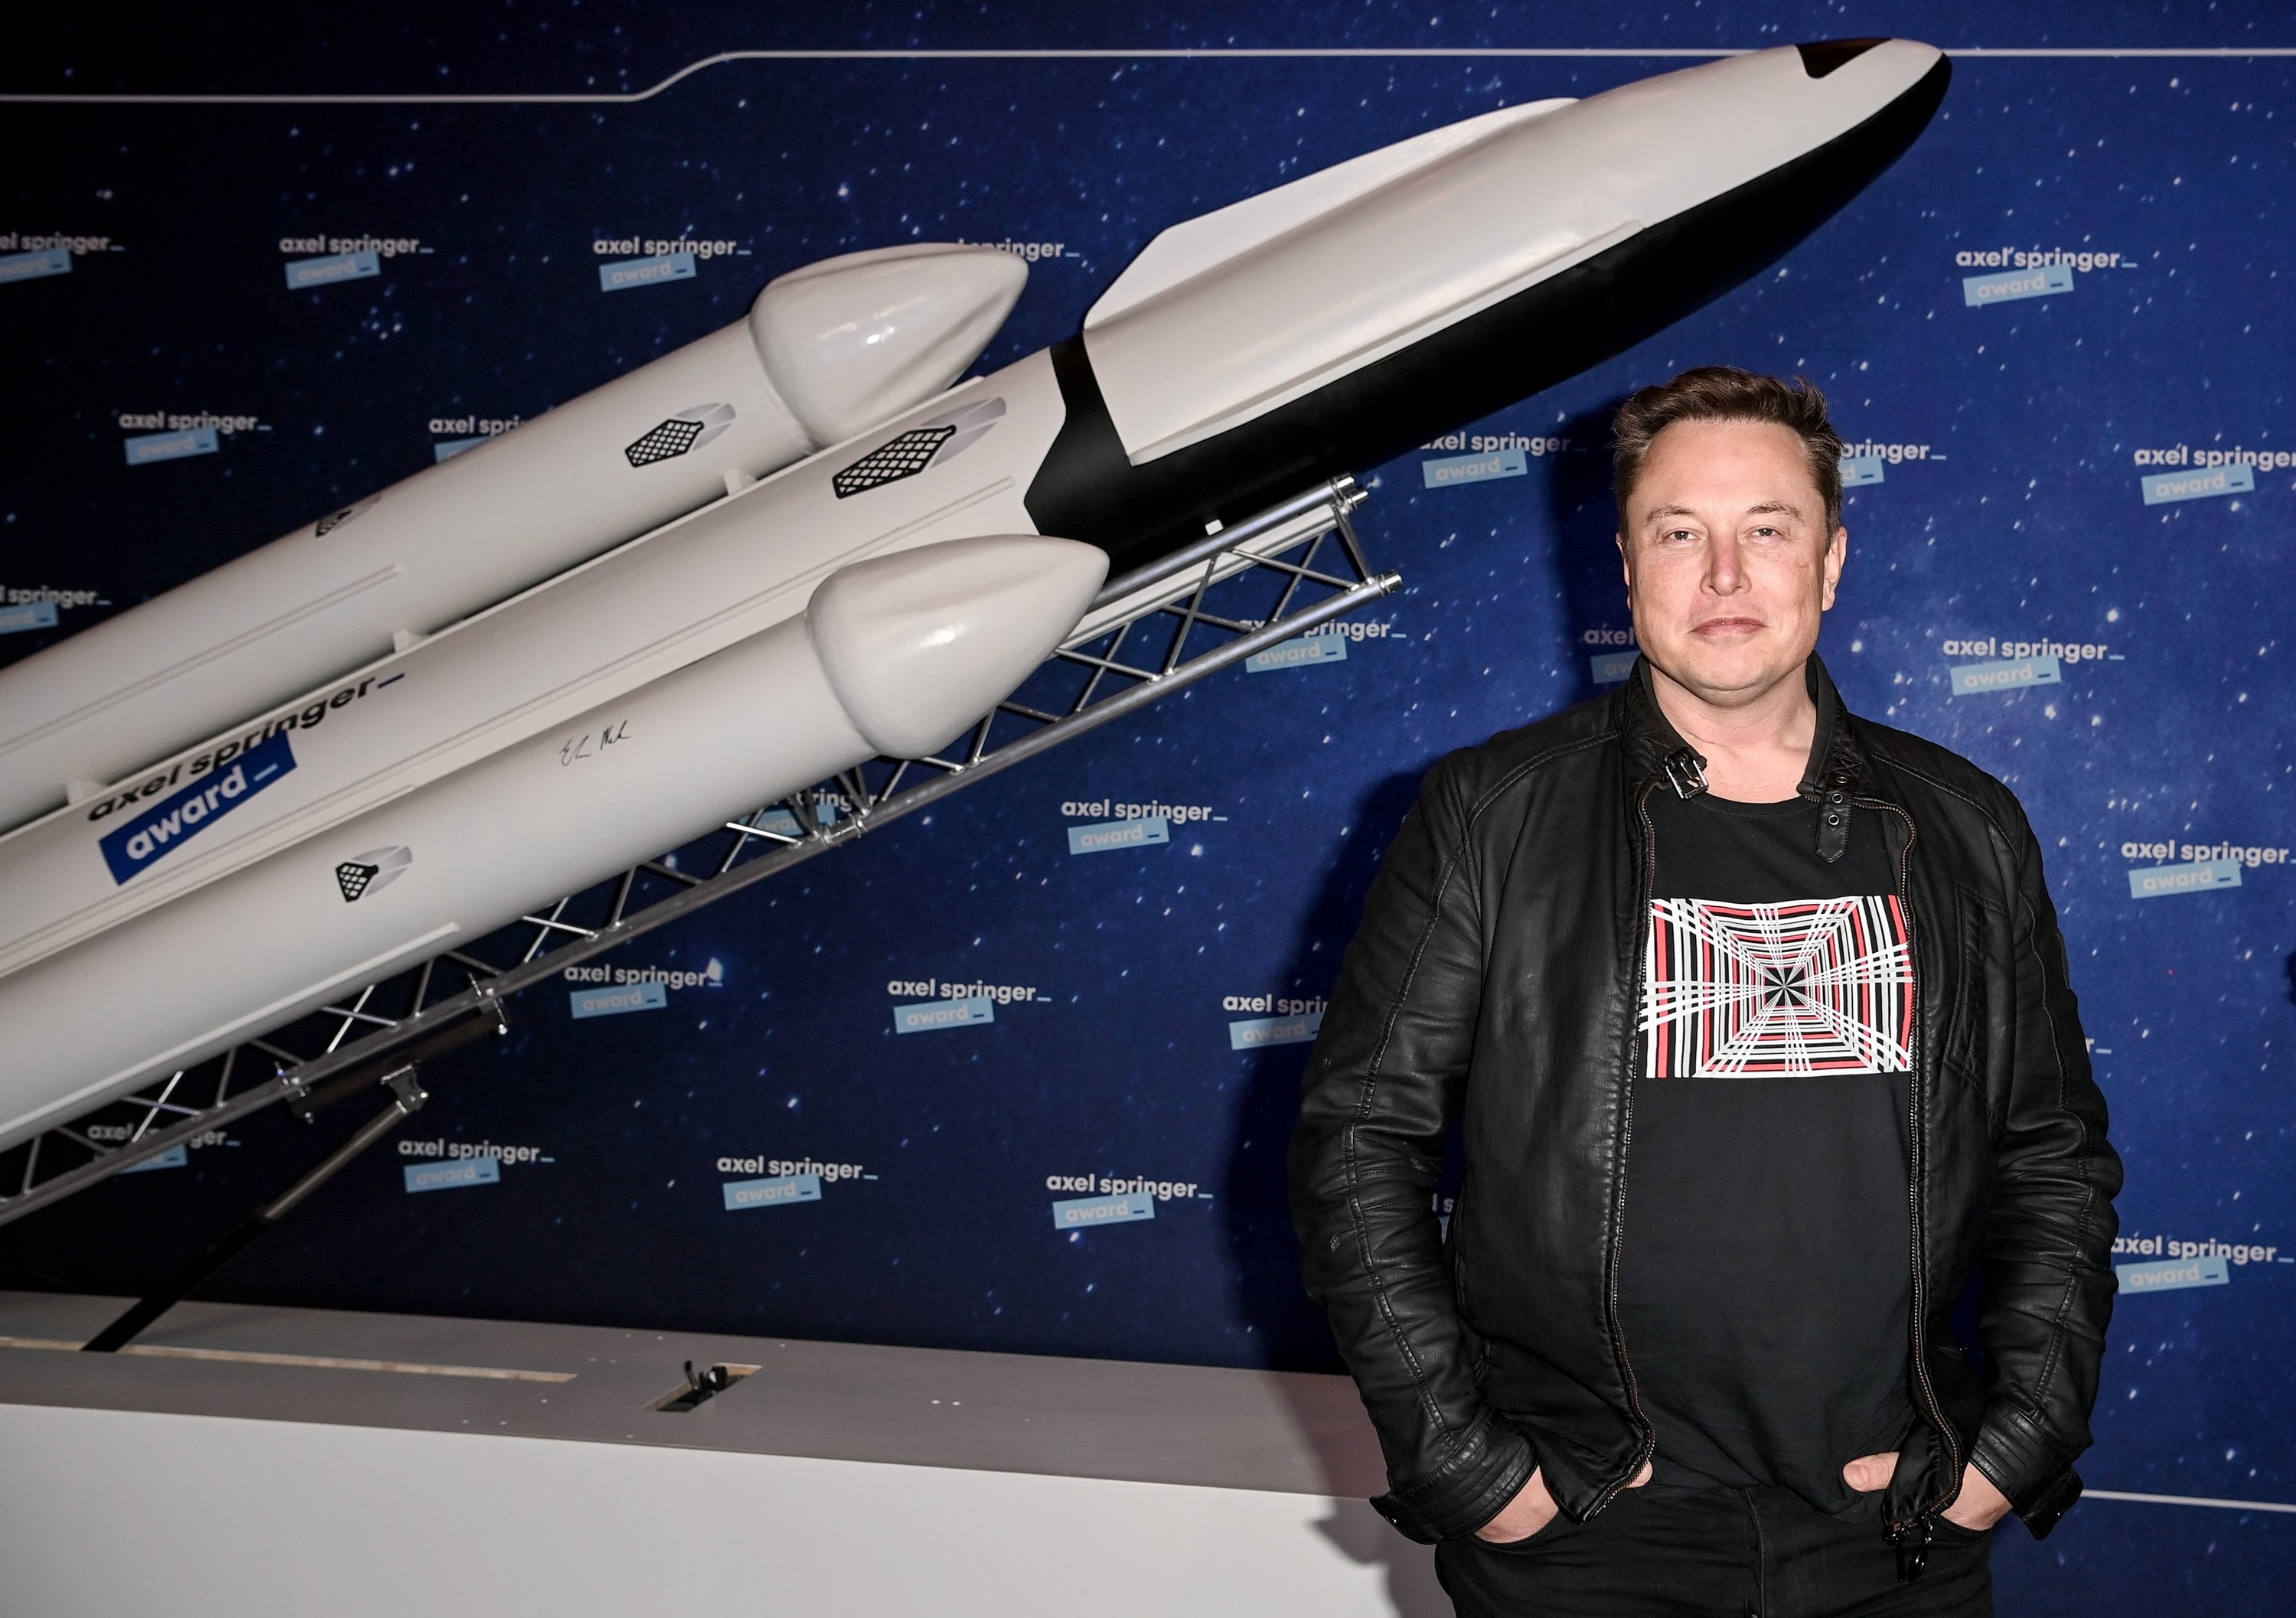 SpaceX owner and Tesla CEO Elon Musk poses as he arrives on the red carpet for the Axel Springer Awards ceremony